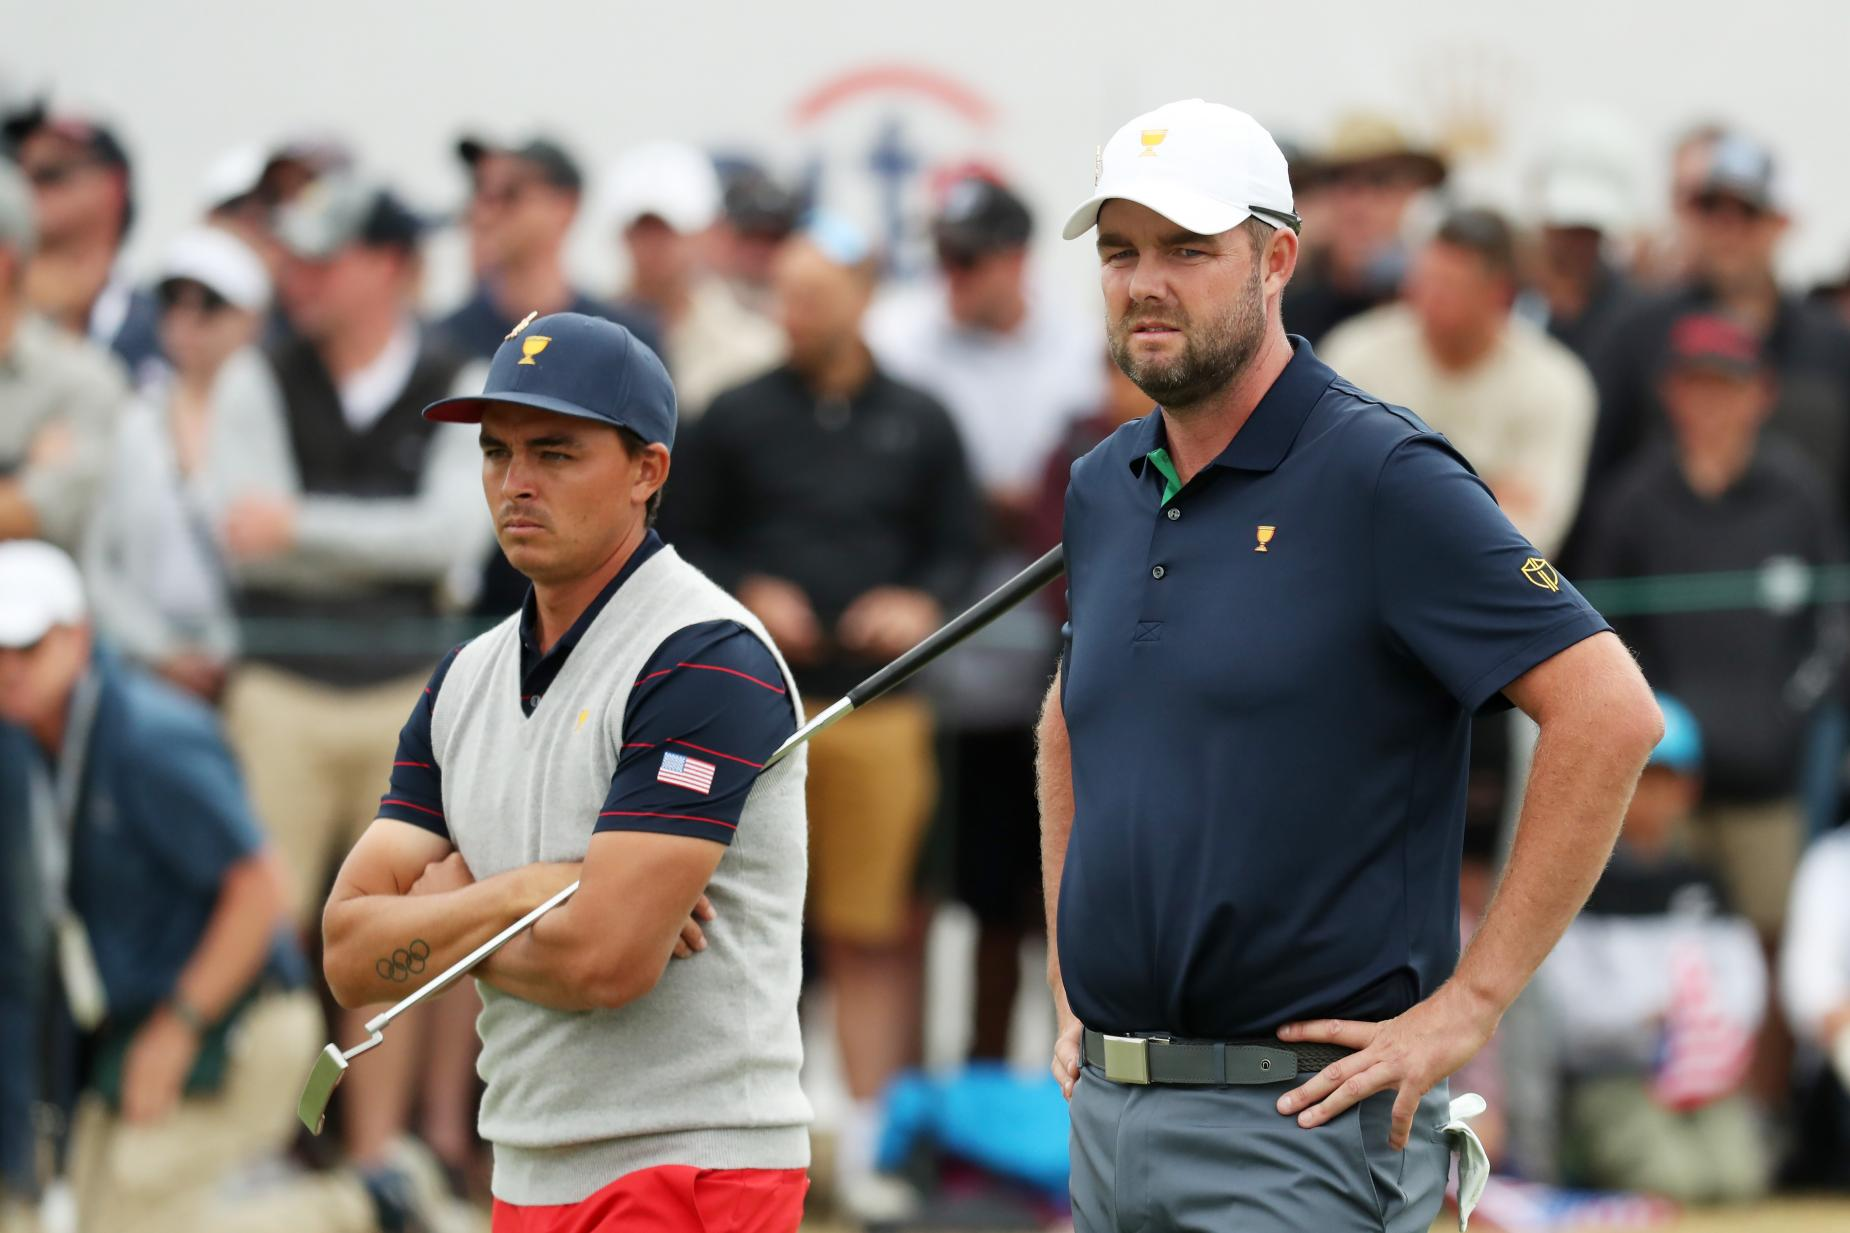 2019 Presidents Cup - Day 3